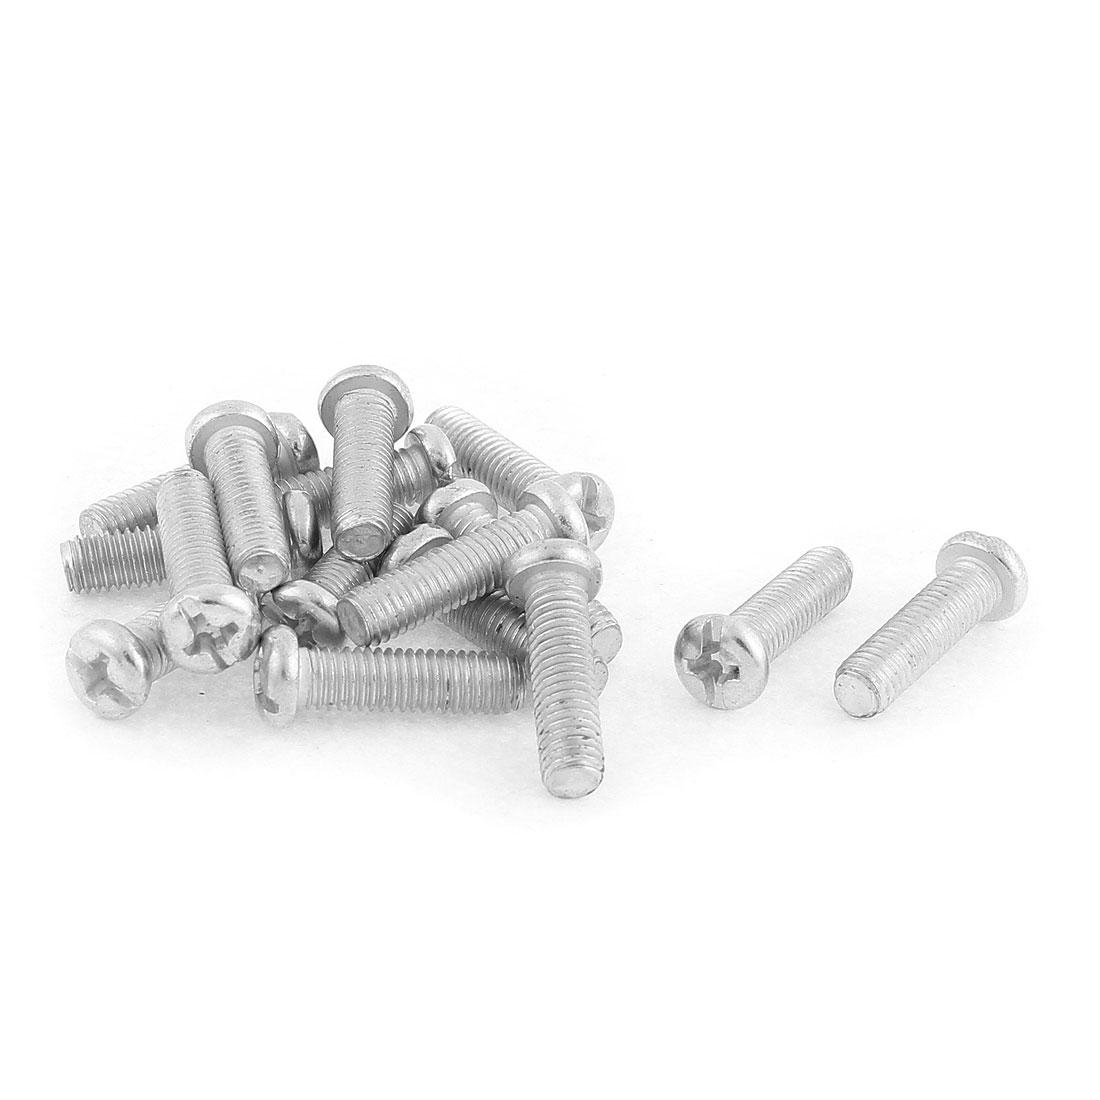 M5 x 20mm Kitchenware Pot Pan Round Head Mounting Phillips Screws 15 Pcs